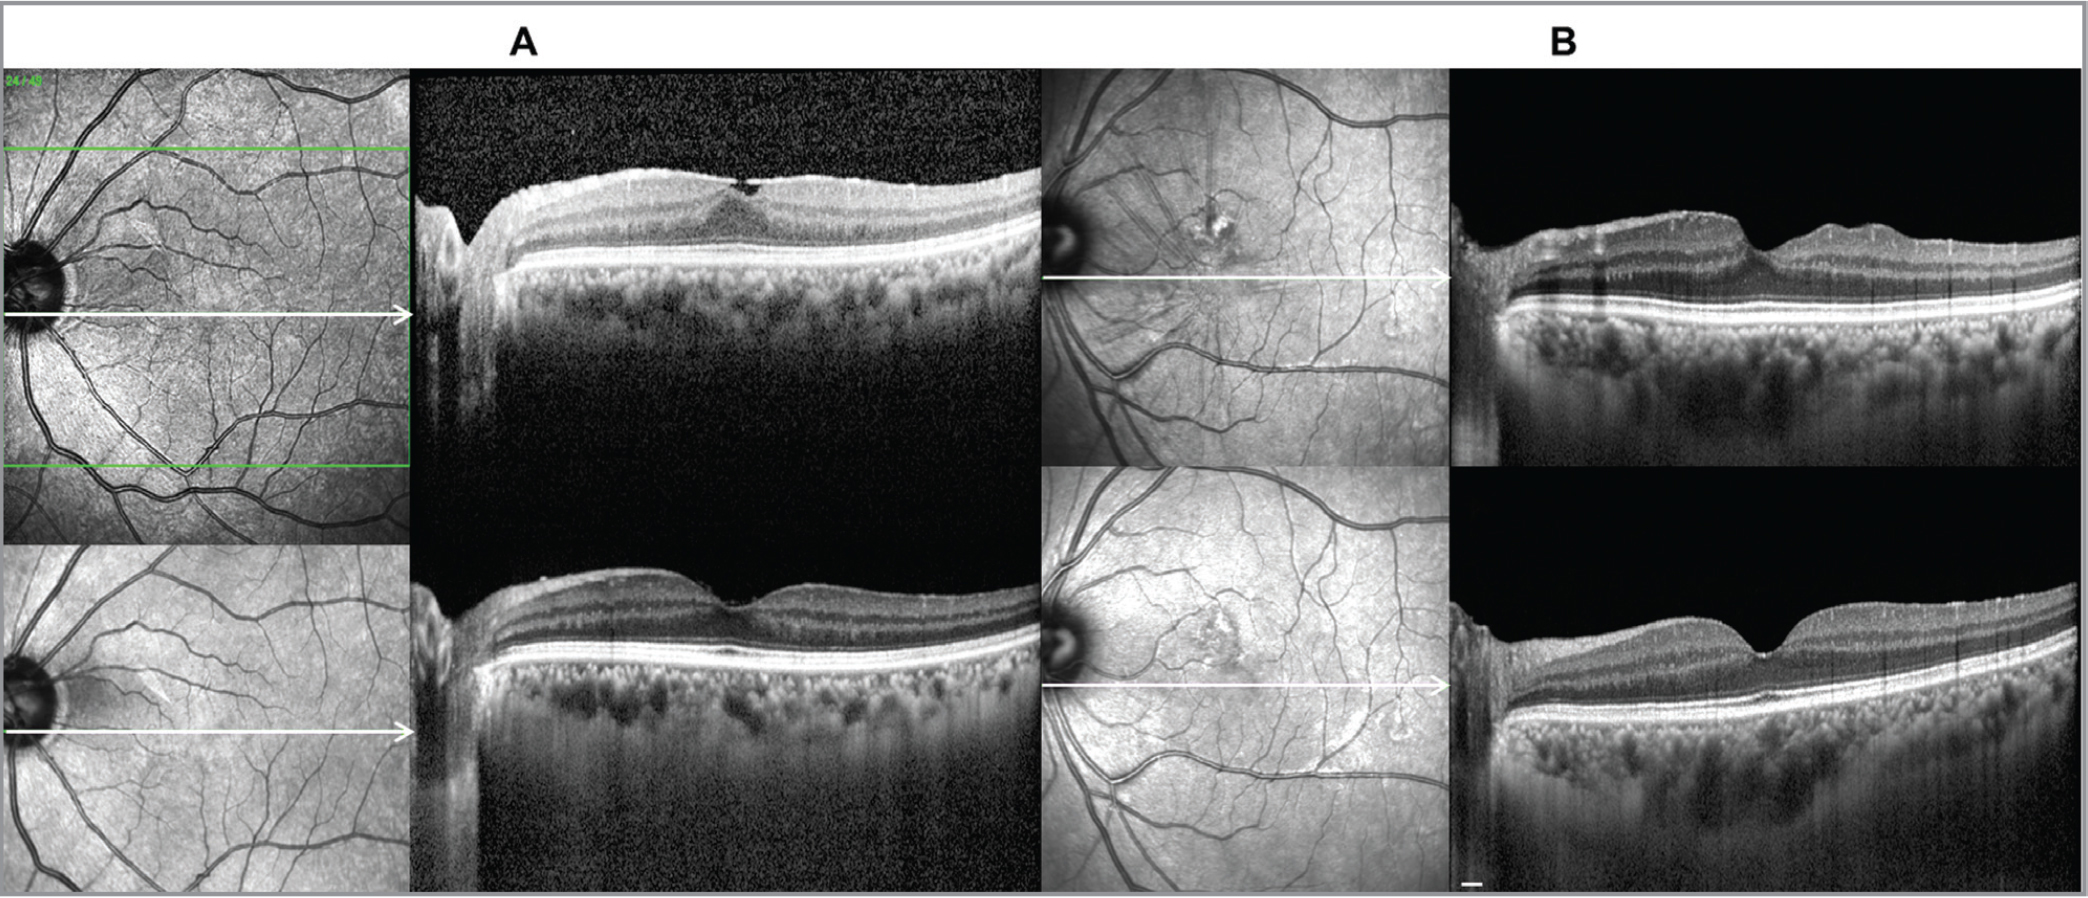 Changes of macular choroidal thickness in the patients with epiretinal membrane (ERM) resolution by optical coherence tomography (OCT). (A) A 57-year-old male patient with spontaneous ERM regression in the left eye. During the 48-month follow-up period, choroidal thickness increased significantly to approximately 20.4% of the baseline. (B) A 57-year-old female patient with nearly complete resolution of macular pucker in the left eye. Macular choroidal thickness after 48 months (329.5 μm) was almost similar to baseline choroidal thickness (329.3 μm), thicker than that of the fellow eye (214.9 μm). Scale bar 200 μm.